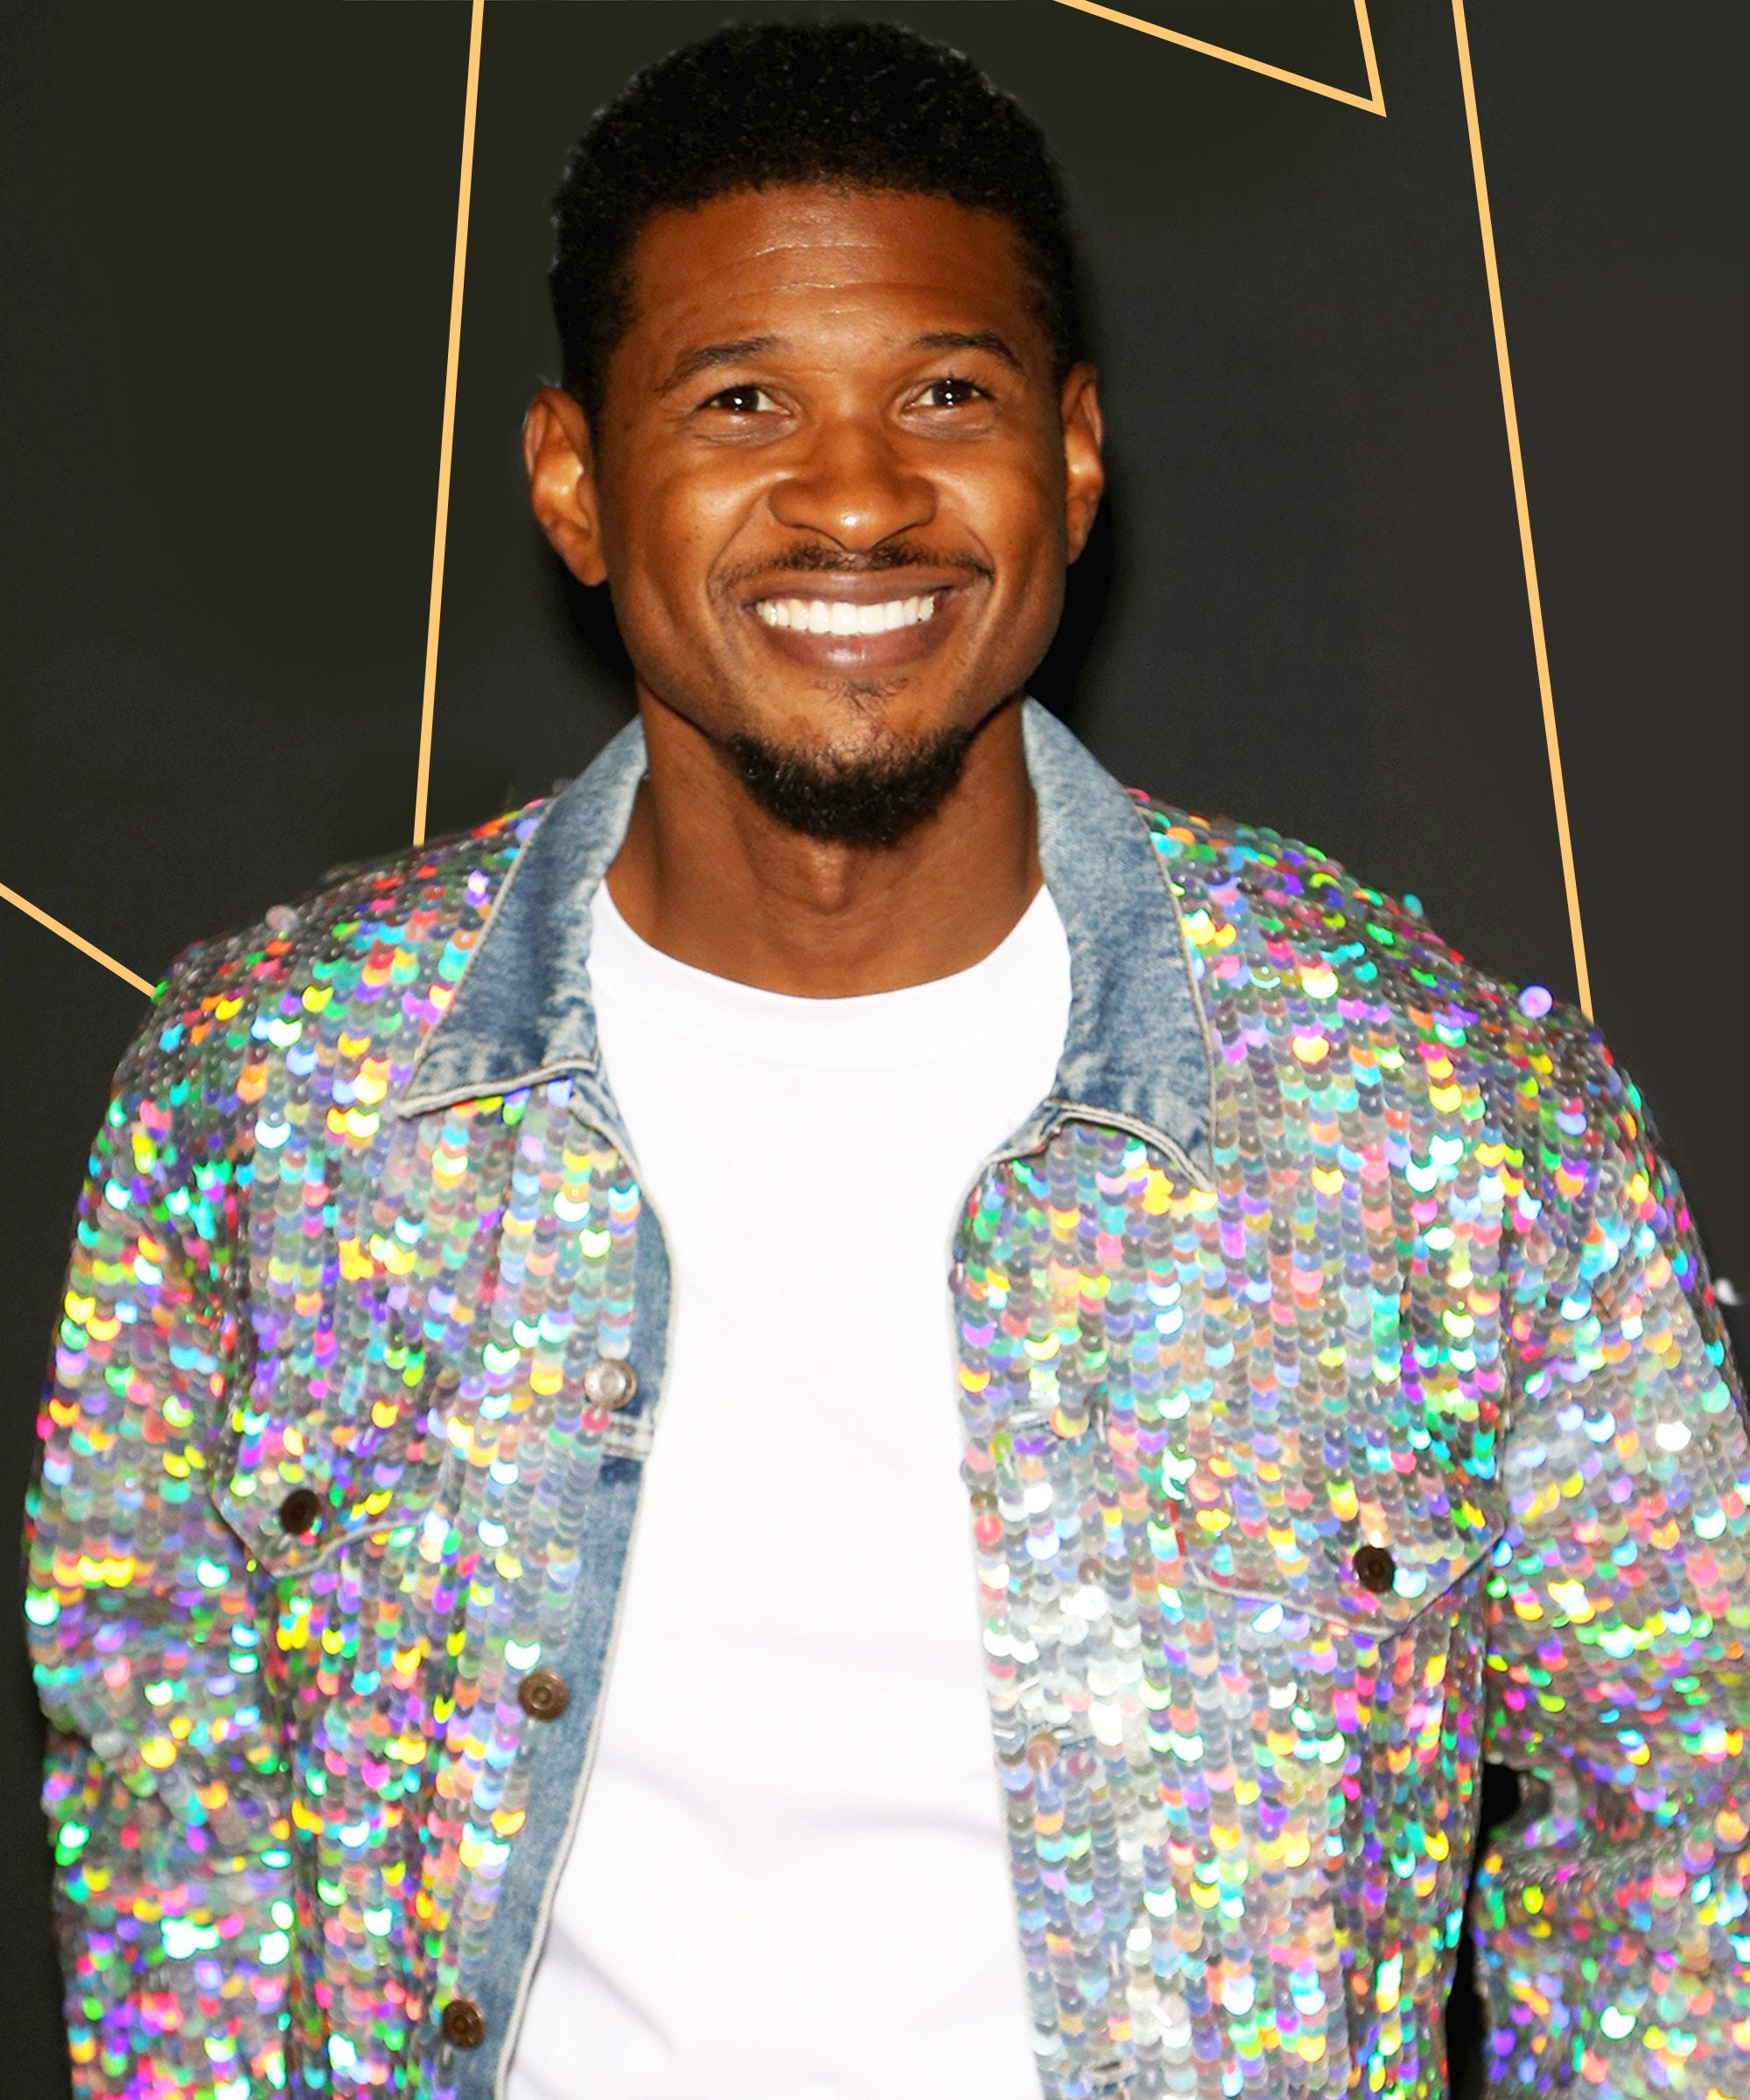 Usher Got A Huge New Tattoo — & We Didn't See It Coming